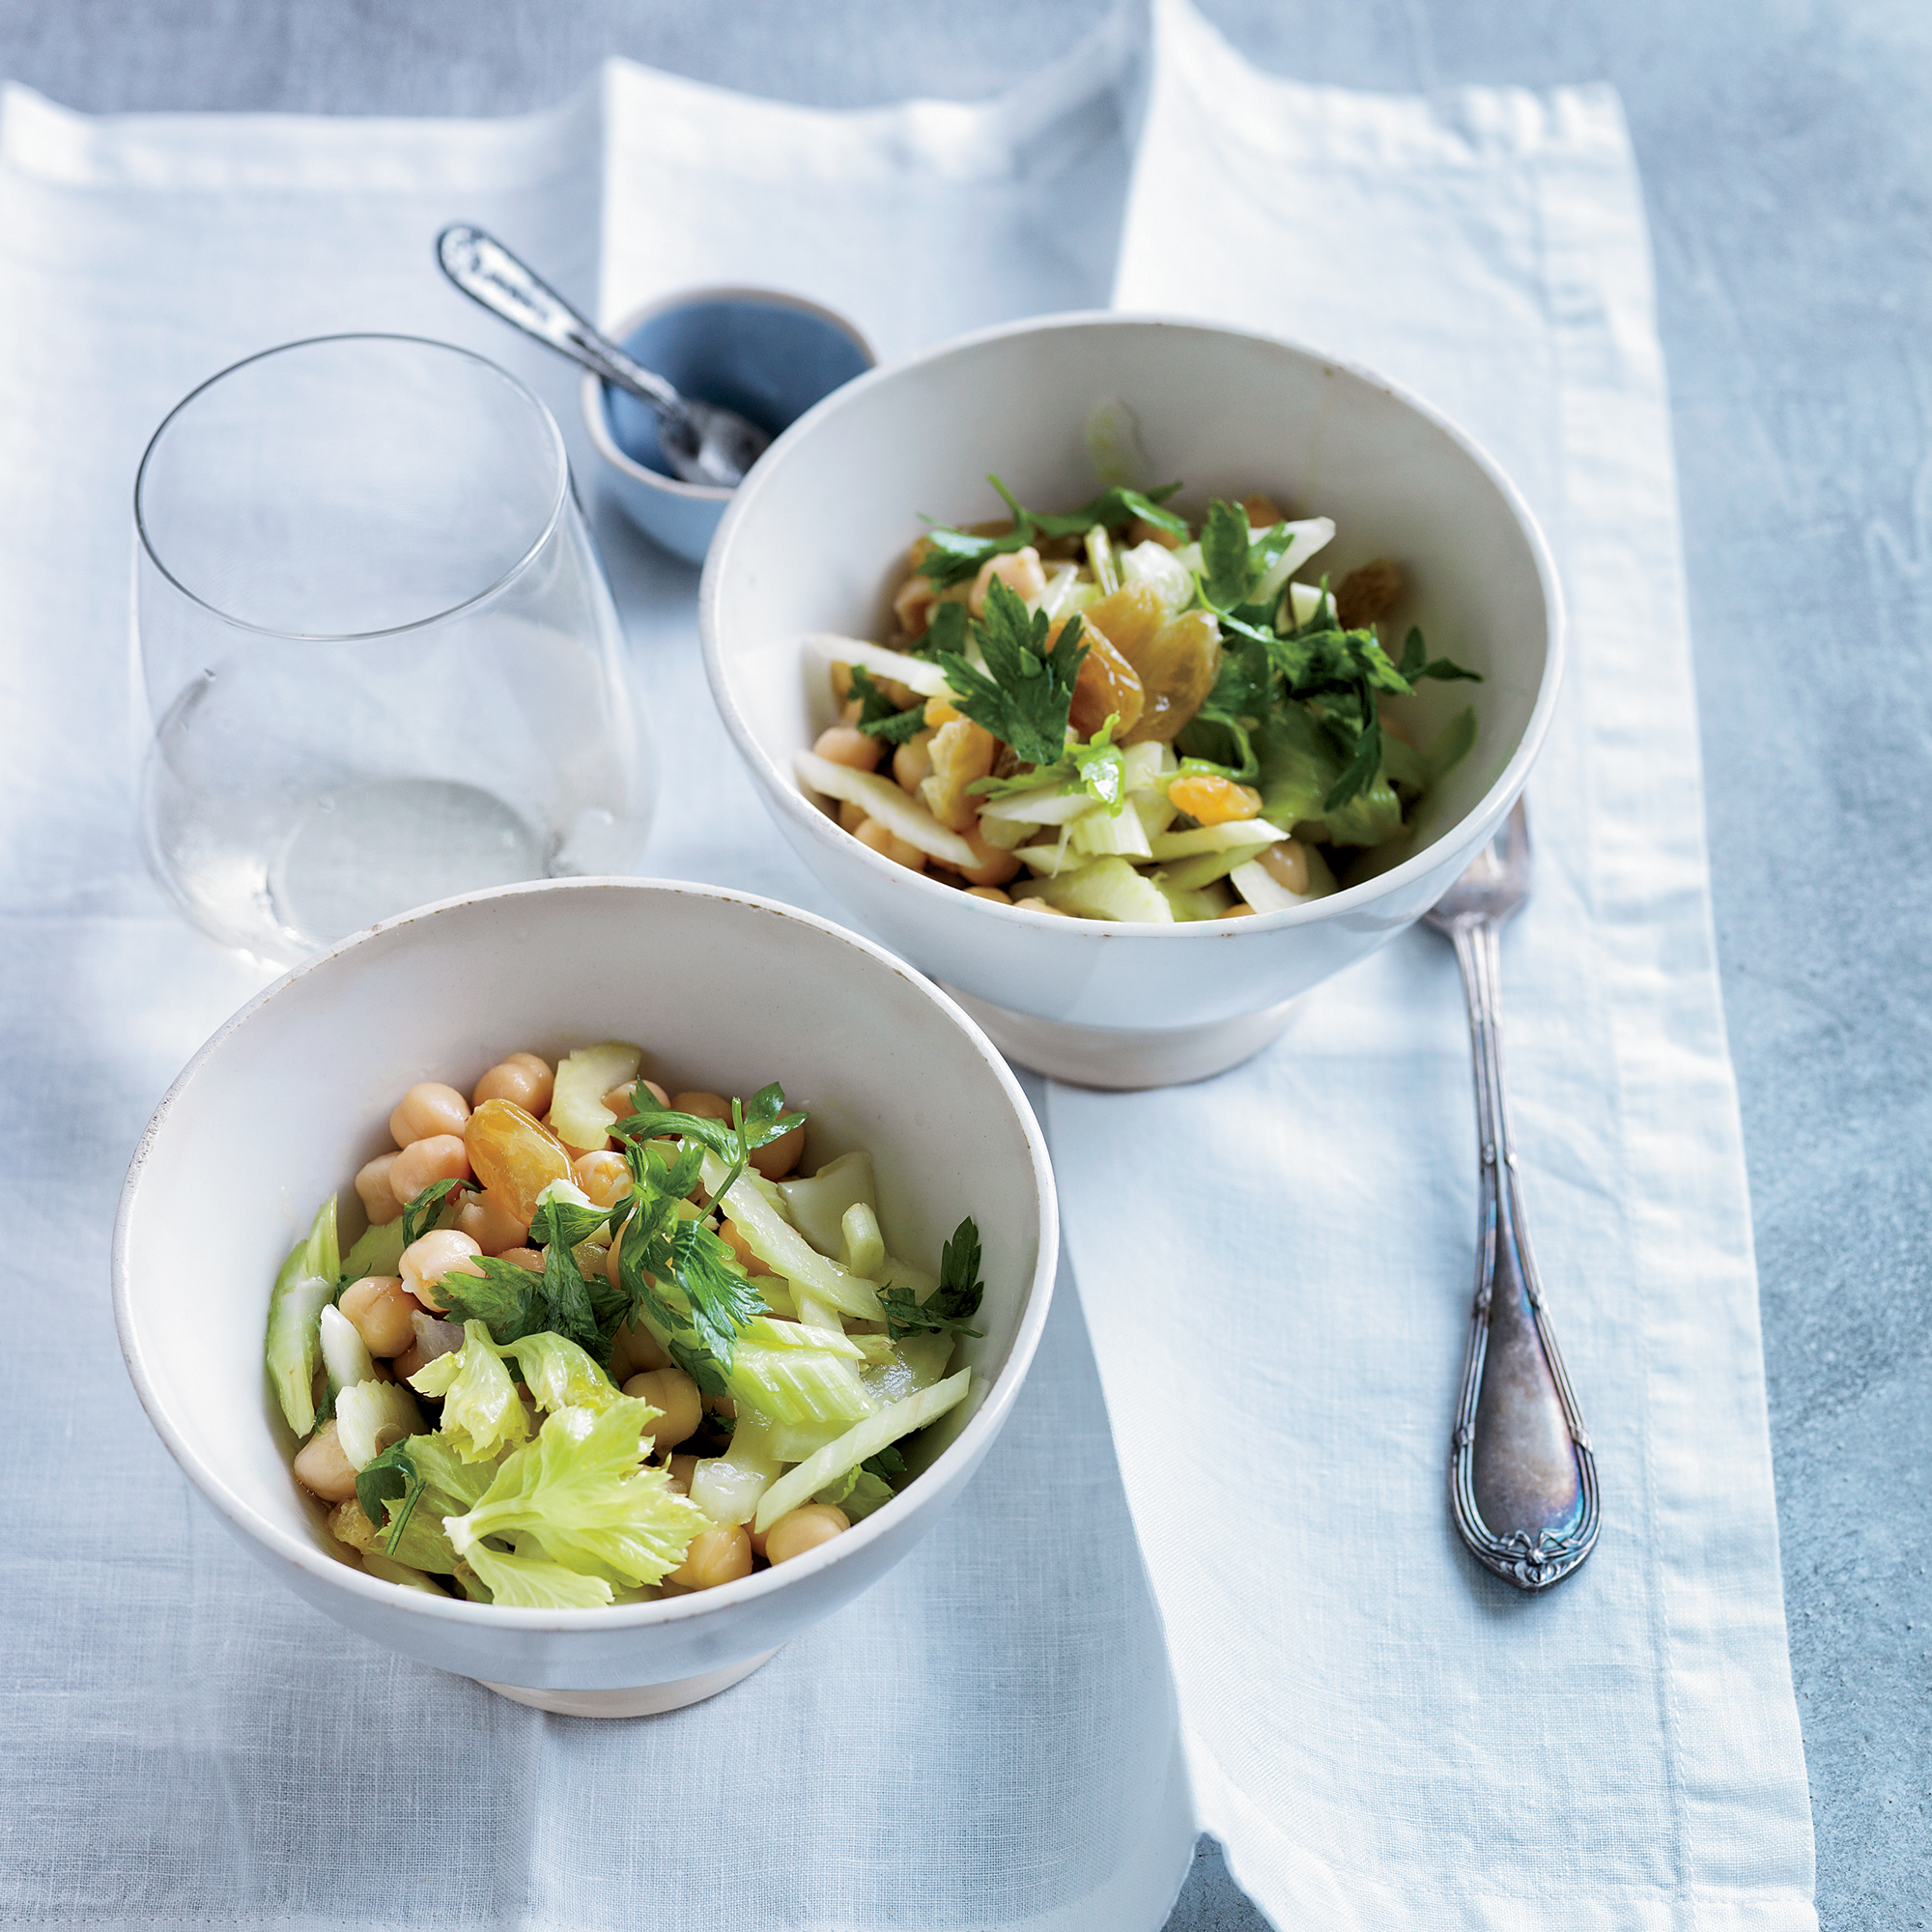 Chickpea Salad with Celery Golden Raisins & Lemon